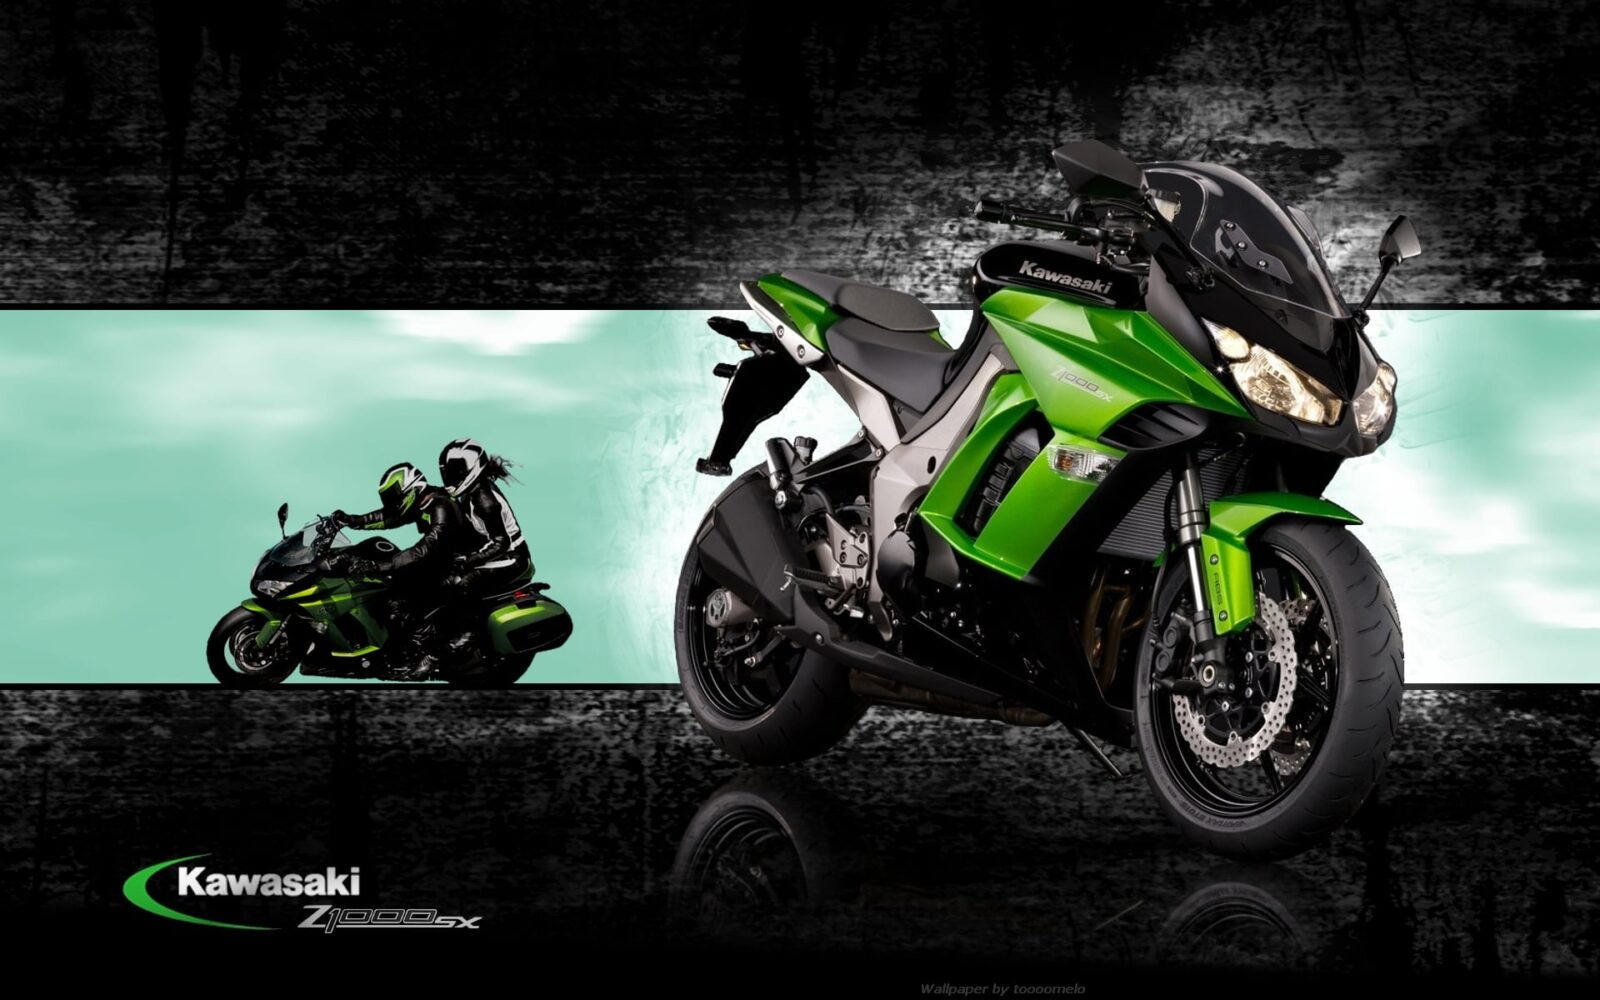 kawasaki z1000 wallpaper download